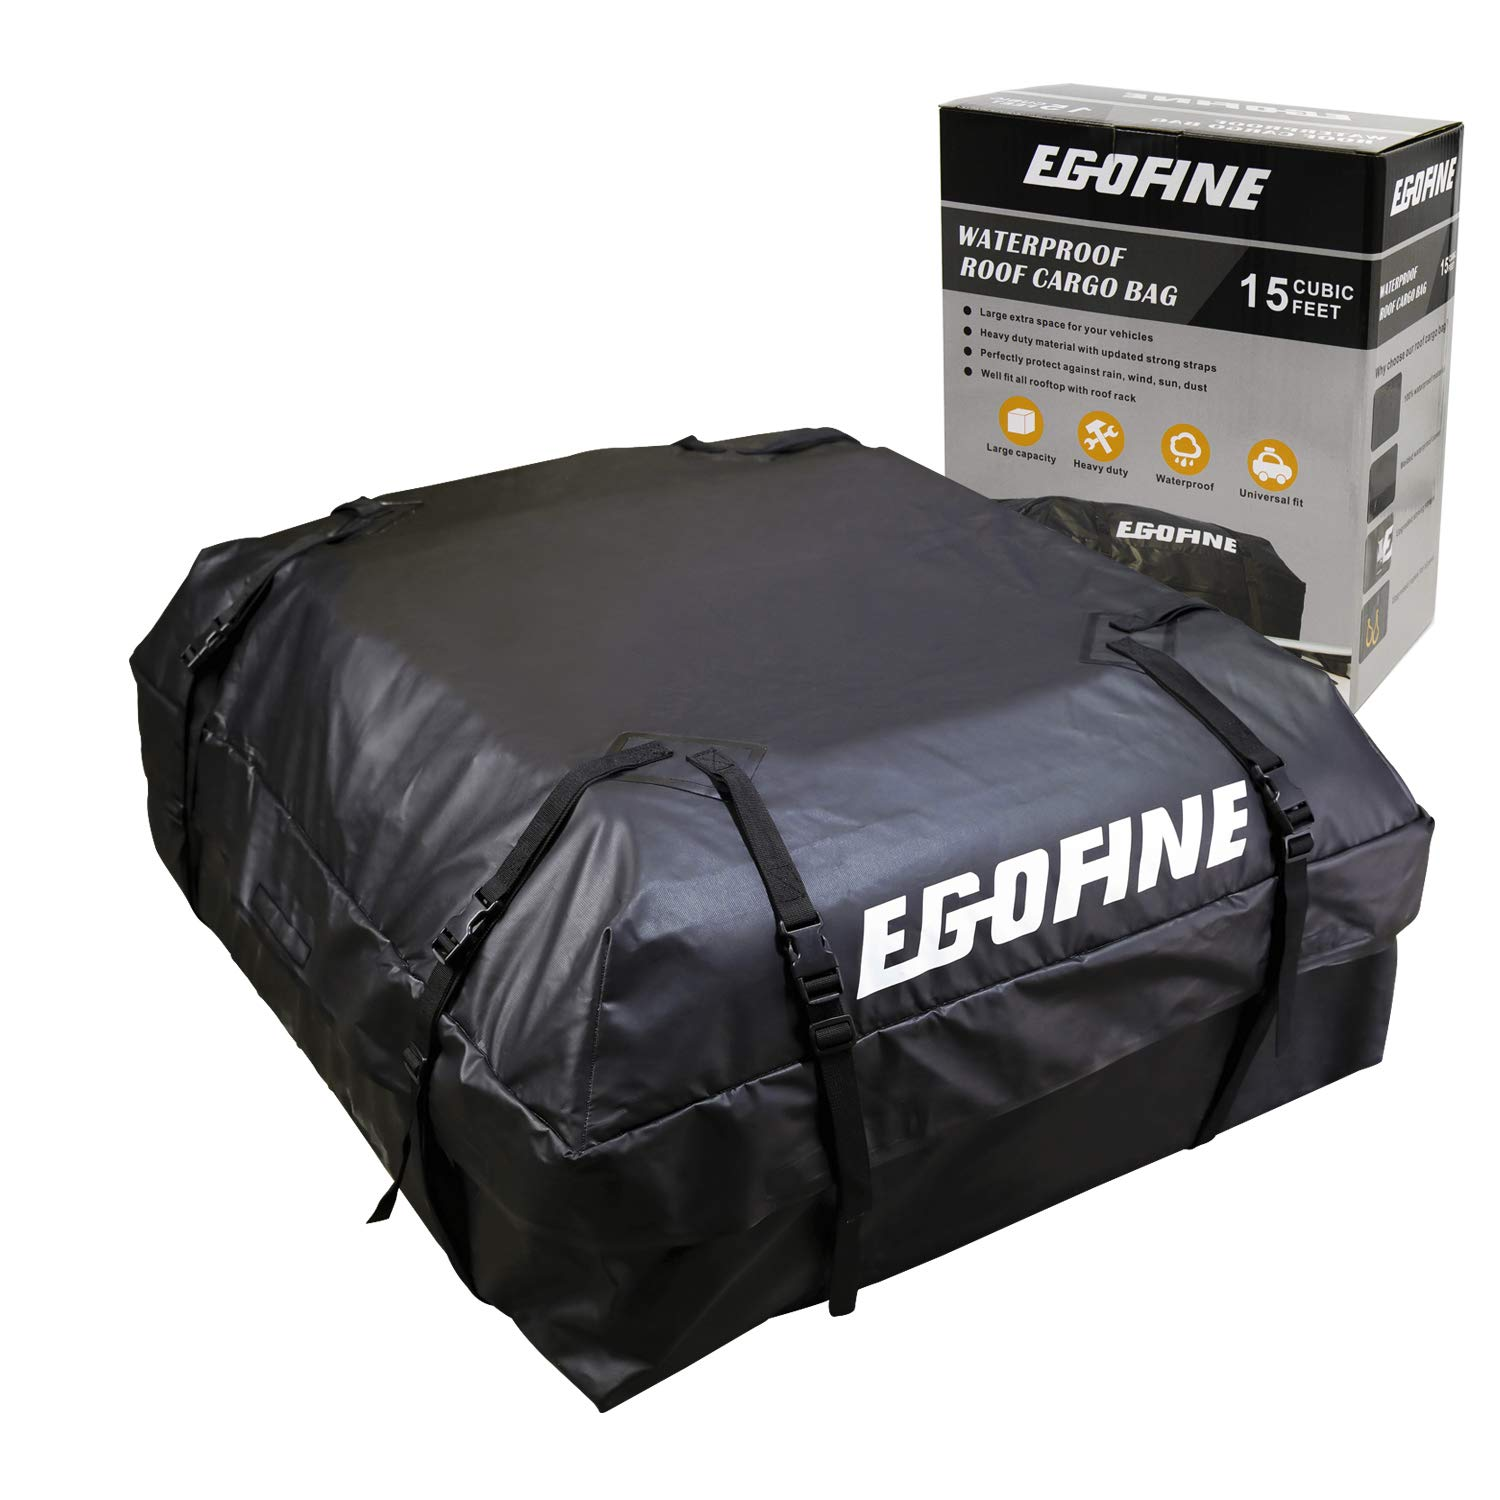 Egofine Roof Top Cargo Carrier Bag (15 cu.ft) 100% Waterproof Car Roof Luggage Carrier Bag for Cars, Vans and SUVs with Roof Rail or Roof Rack by Egofine